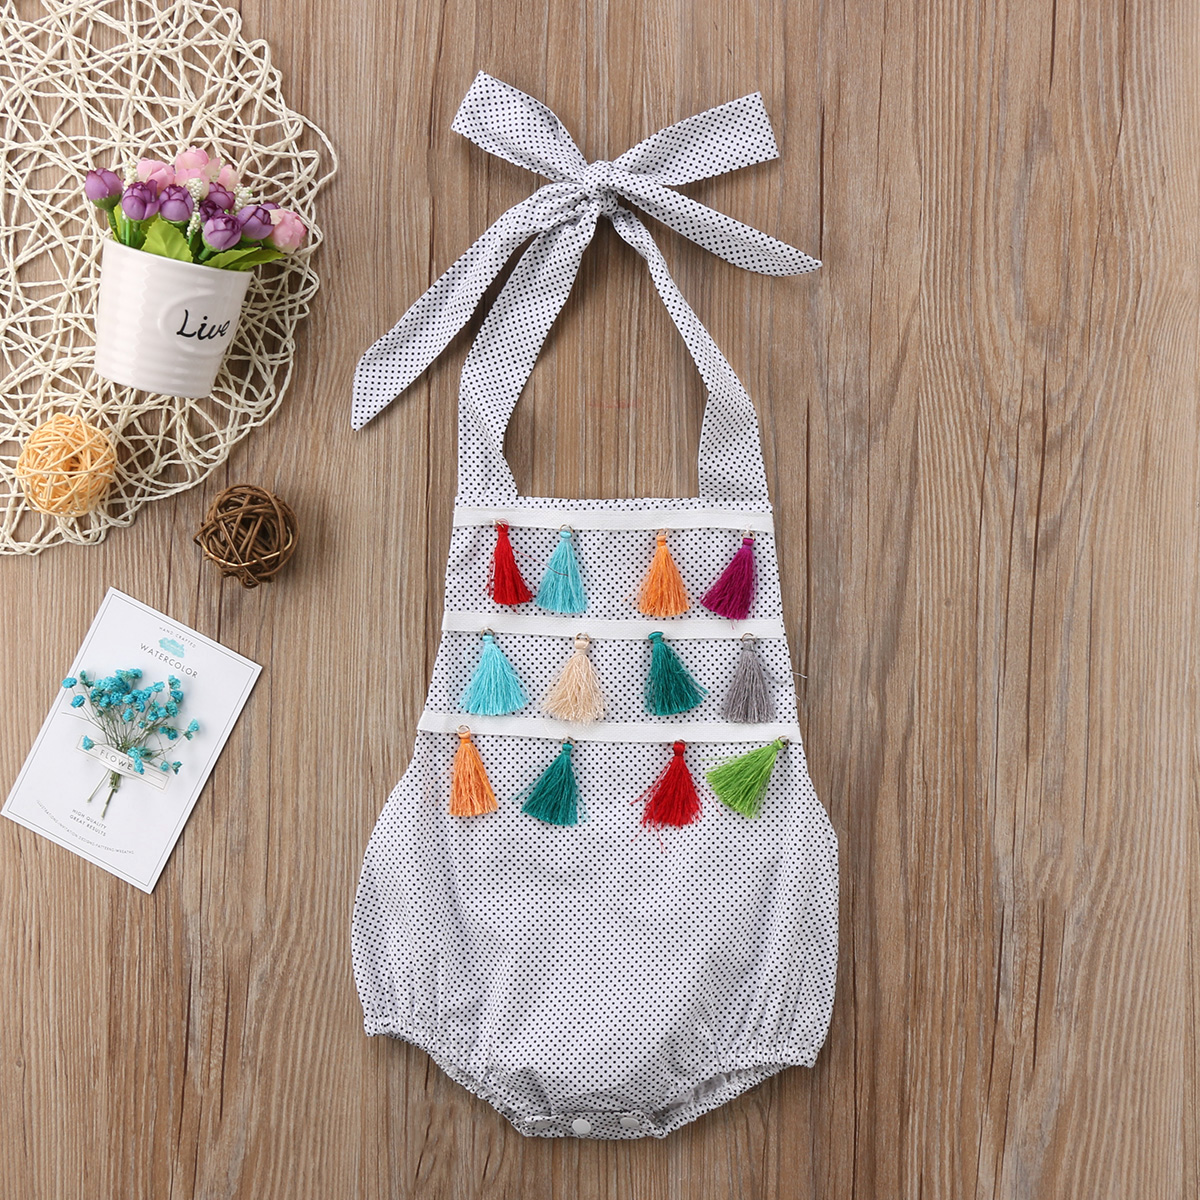 Cute Newborn Baby Girl Polka Dot Tassels Swimming Bodysuit Clothes Kids Summer Sunsuit Swimwear Bathing Suit Beachwear Bikinis in Children 39 s One Piece Suits from Sports amp Entertainment